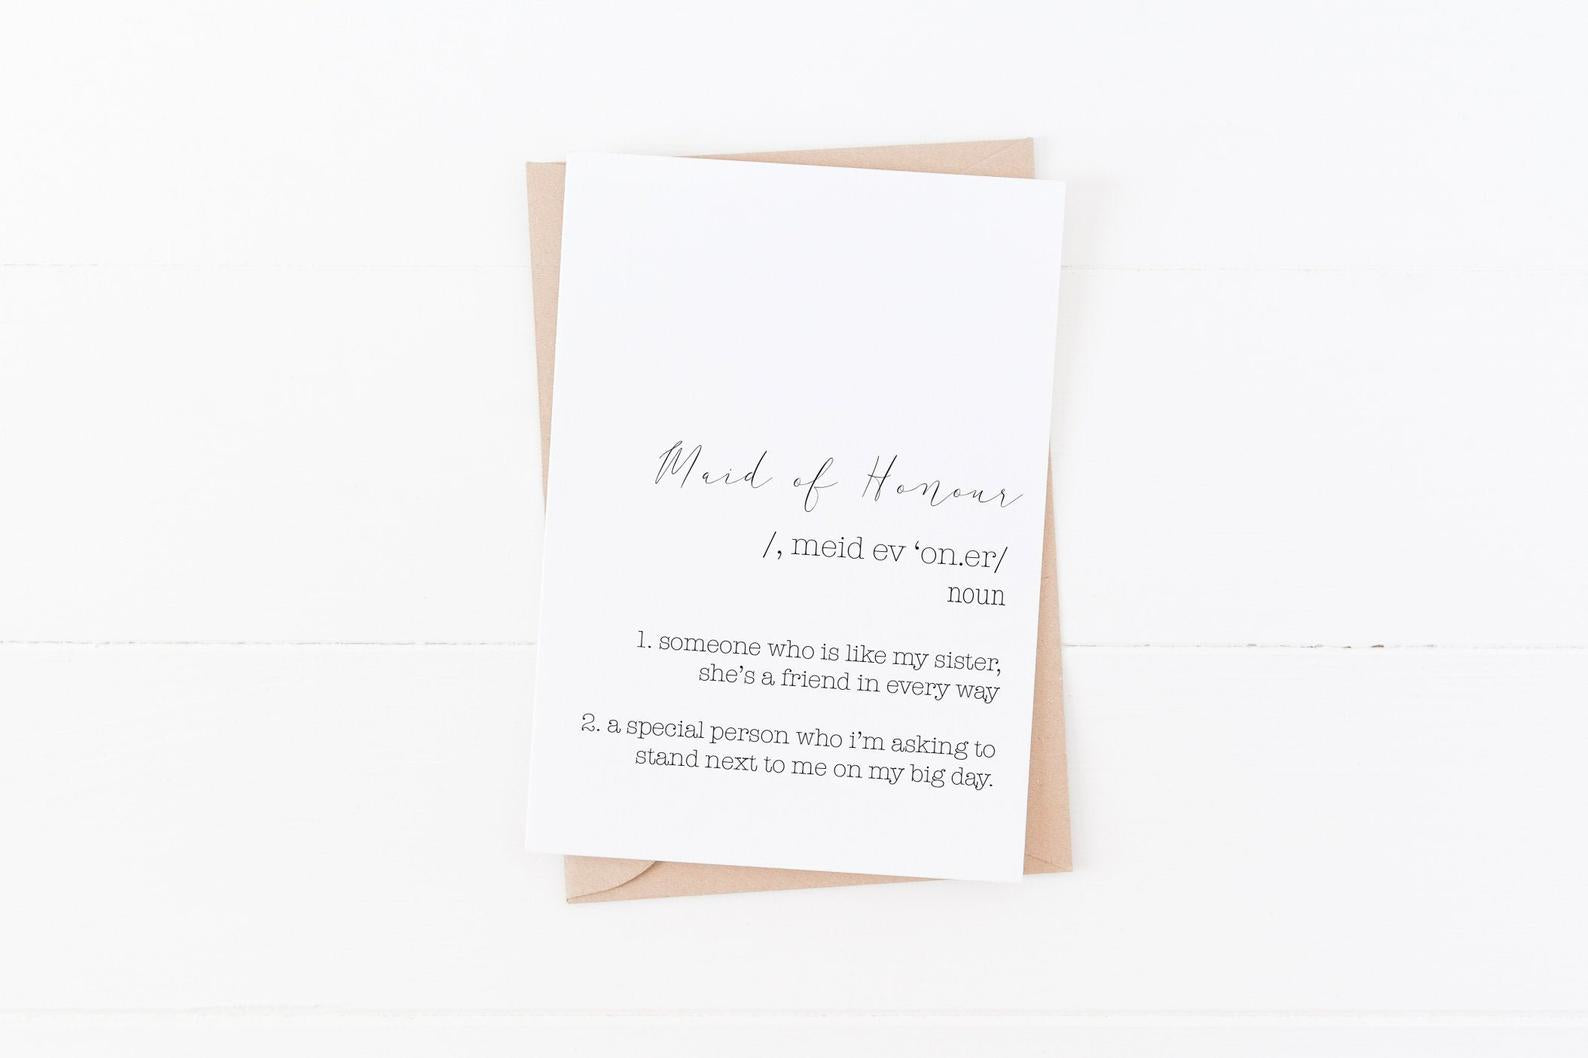 Maid of Honour Proposal Card | Size A6